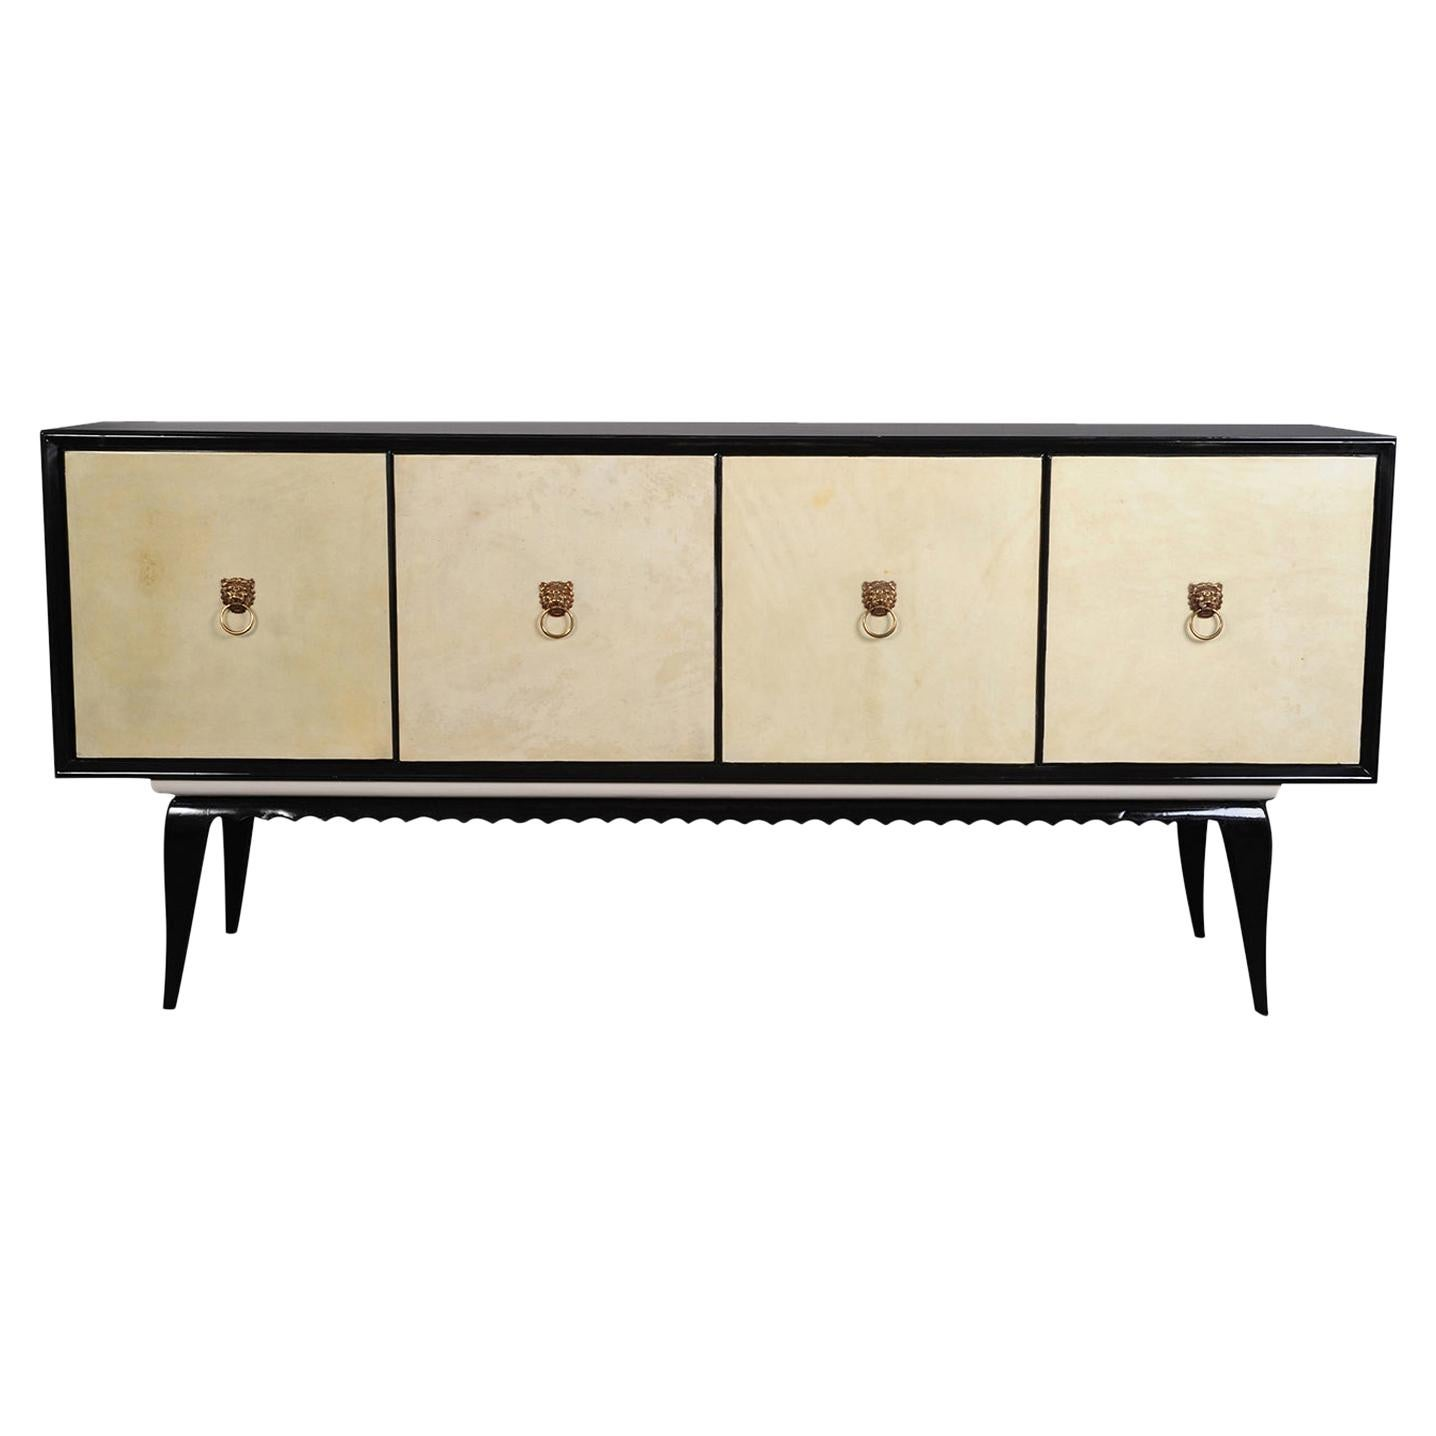 PLM-0004 Black and Ivory Parchment Sideboard